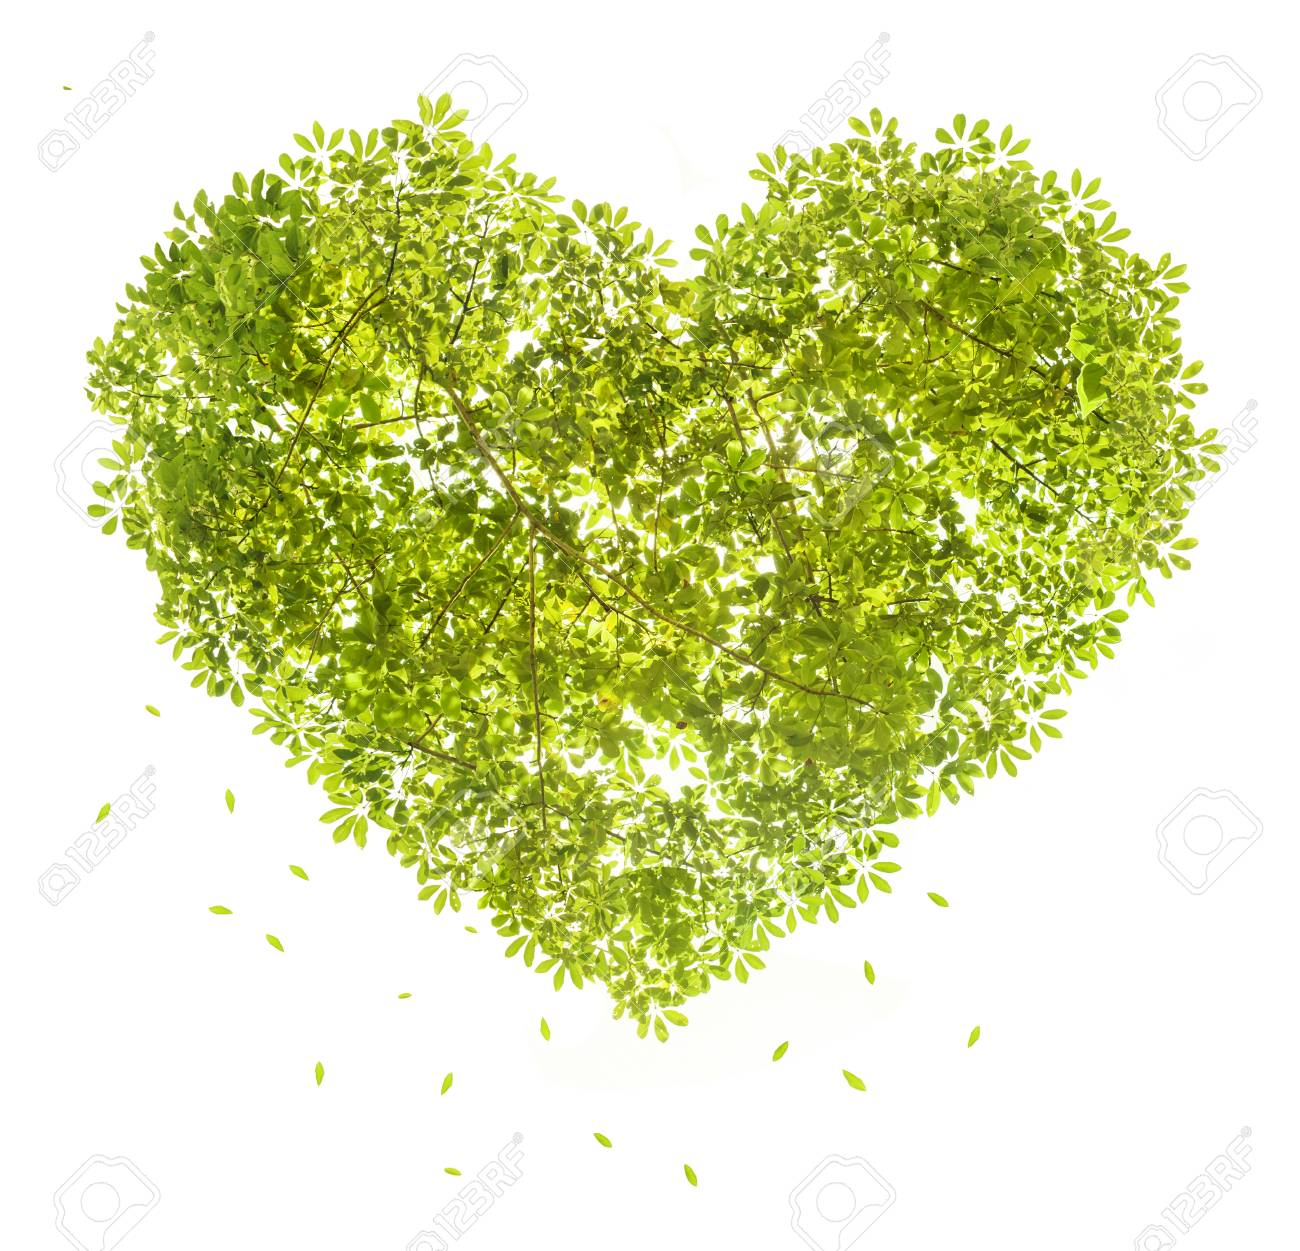 heart shape of green leave symble of love on white background